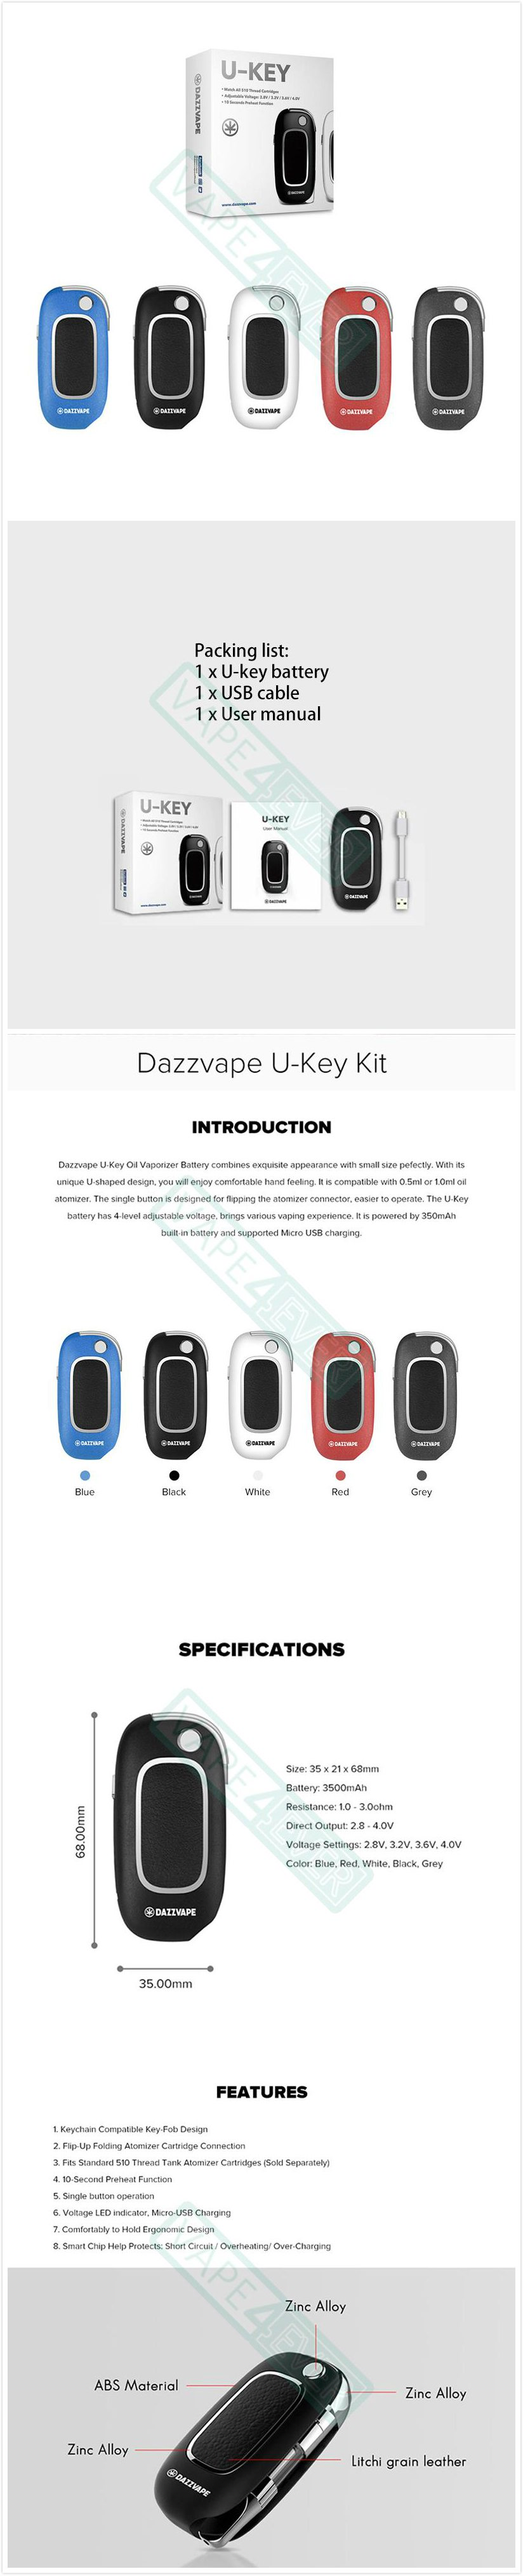 Dazzvape U-Key Oil Vaporizer 350mAh V/V Battery Fit For 0.5ml/1.0ml Cartridge Instruction